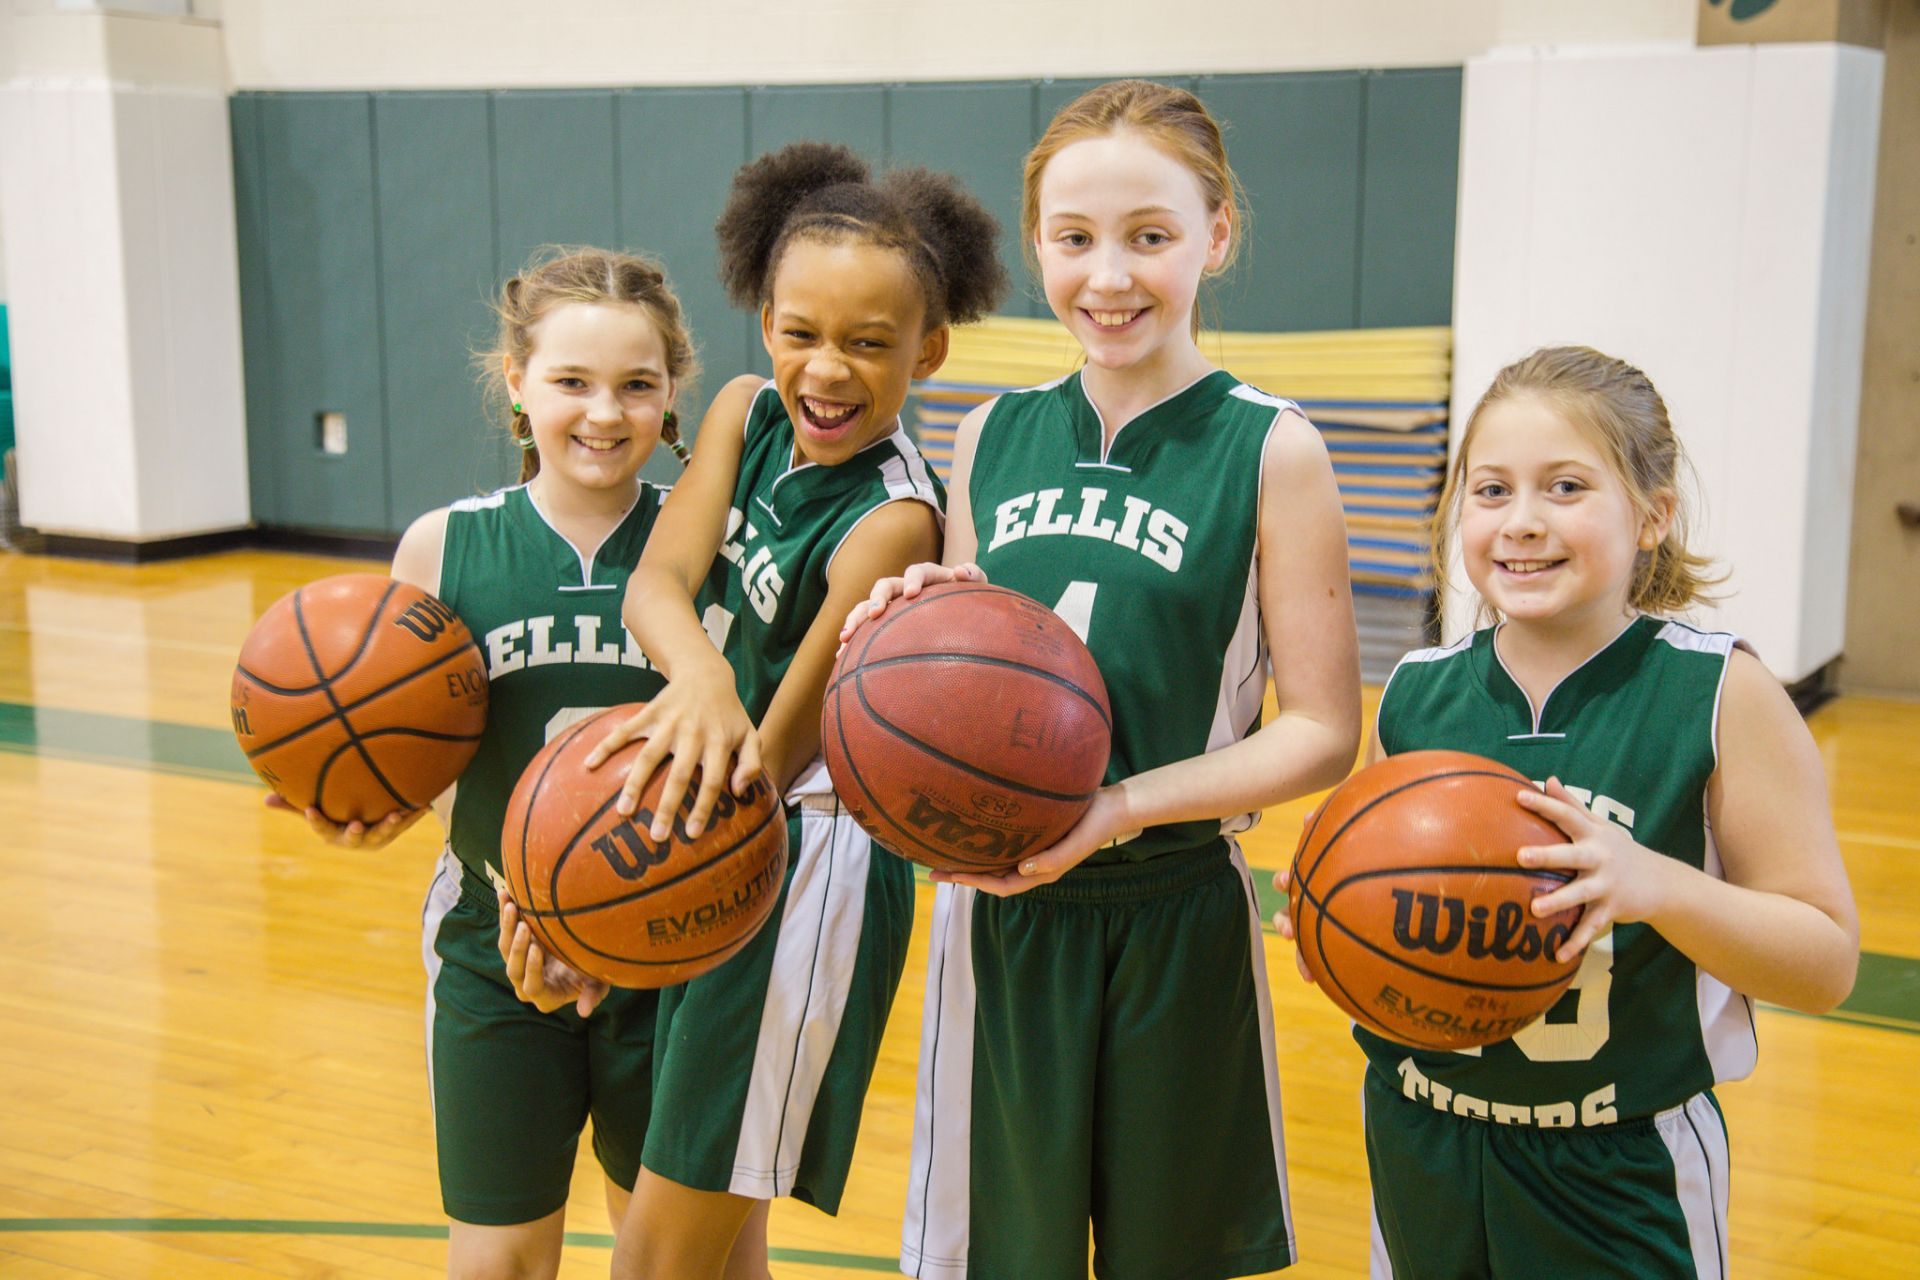 This is a picture of middle school girls posing with basketballs.